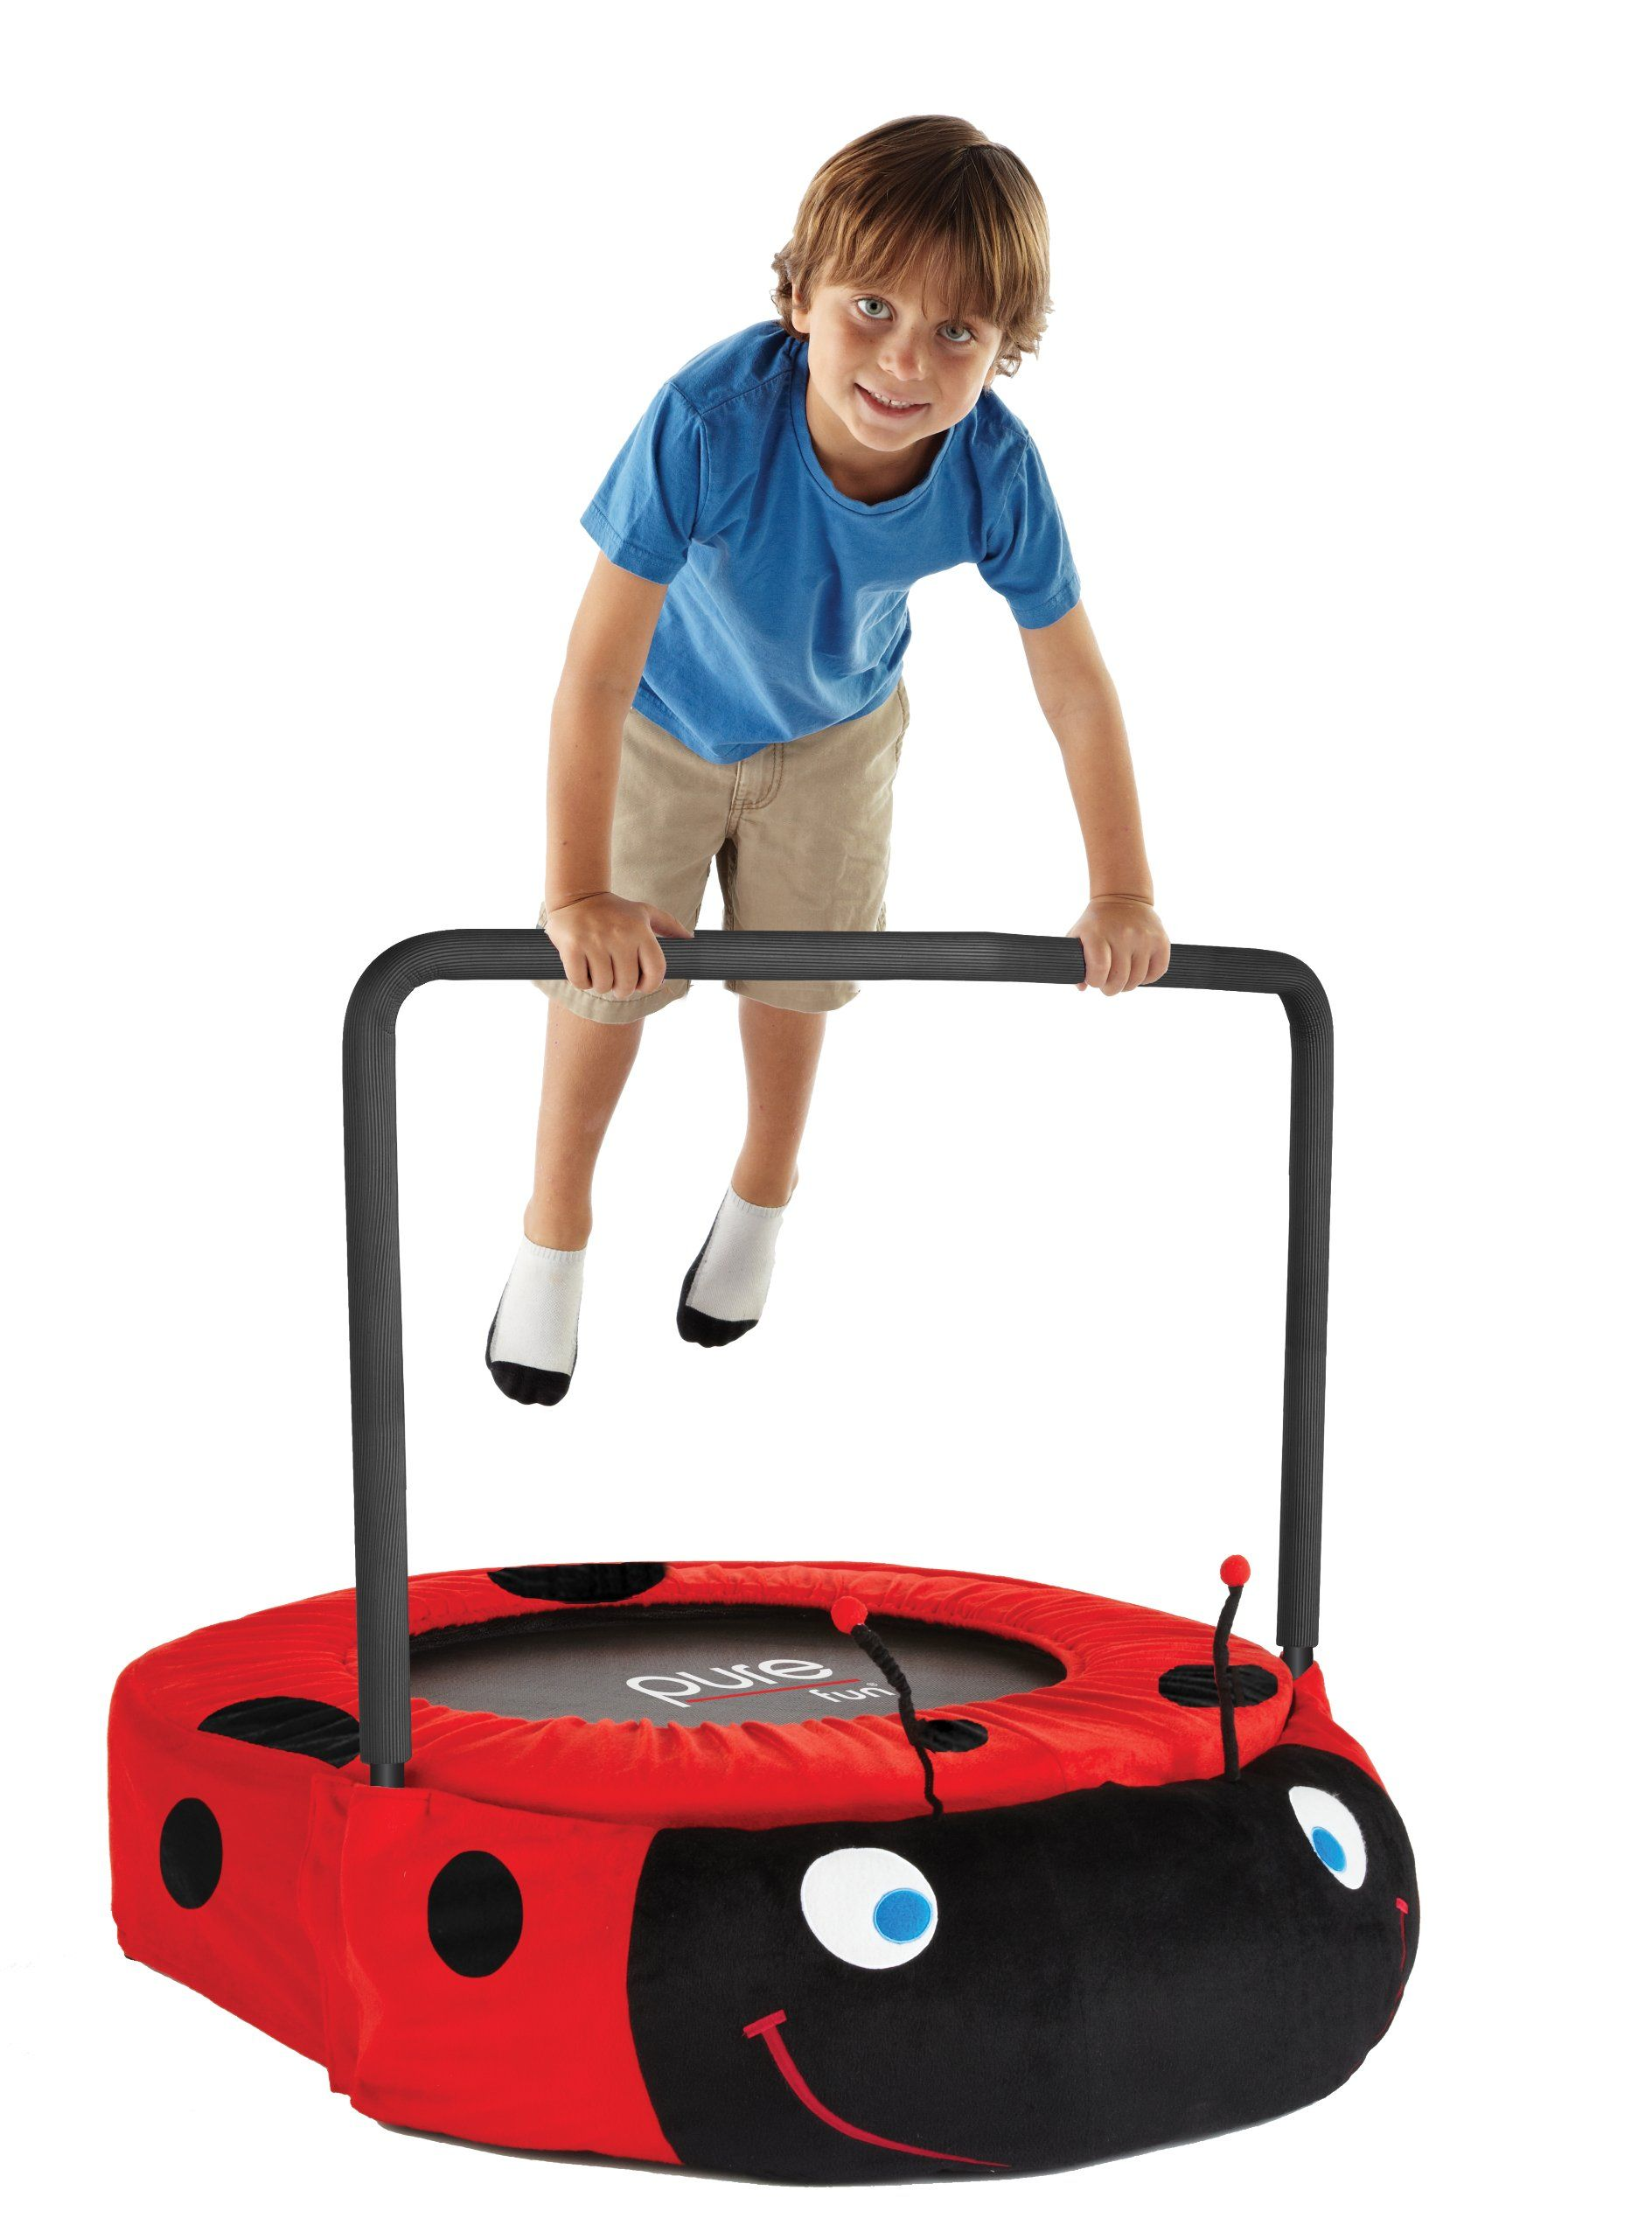 For Toys Boy Age3 11 : Best gifts and toys for year old boys